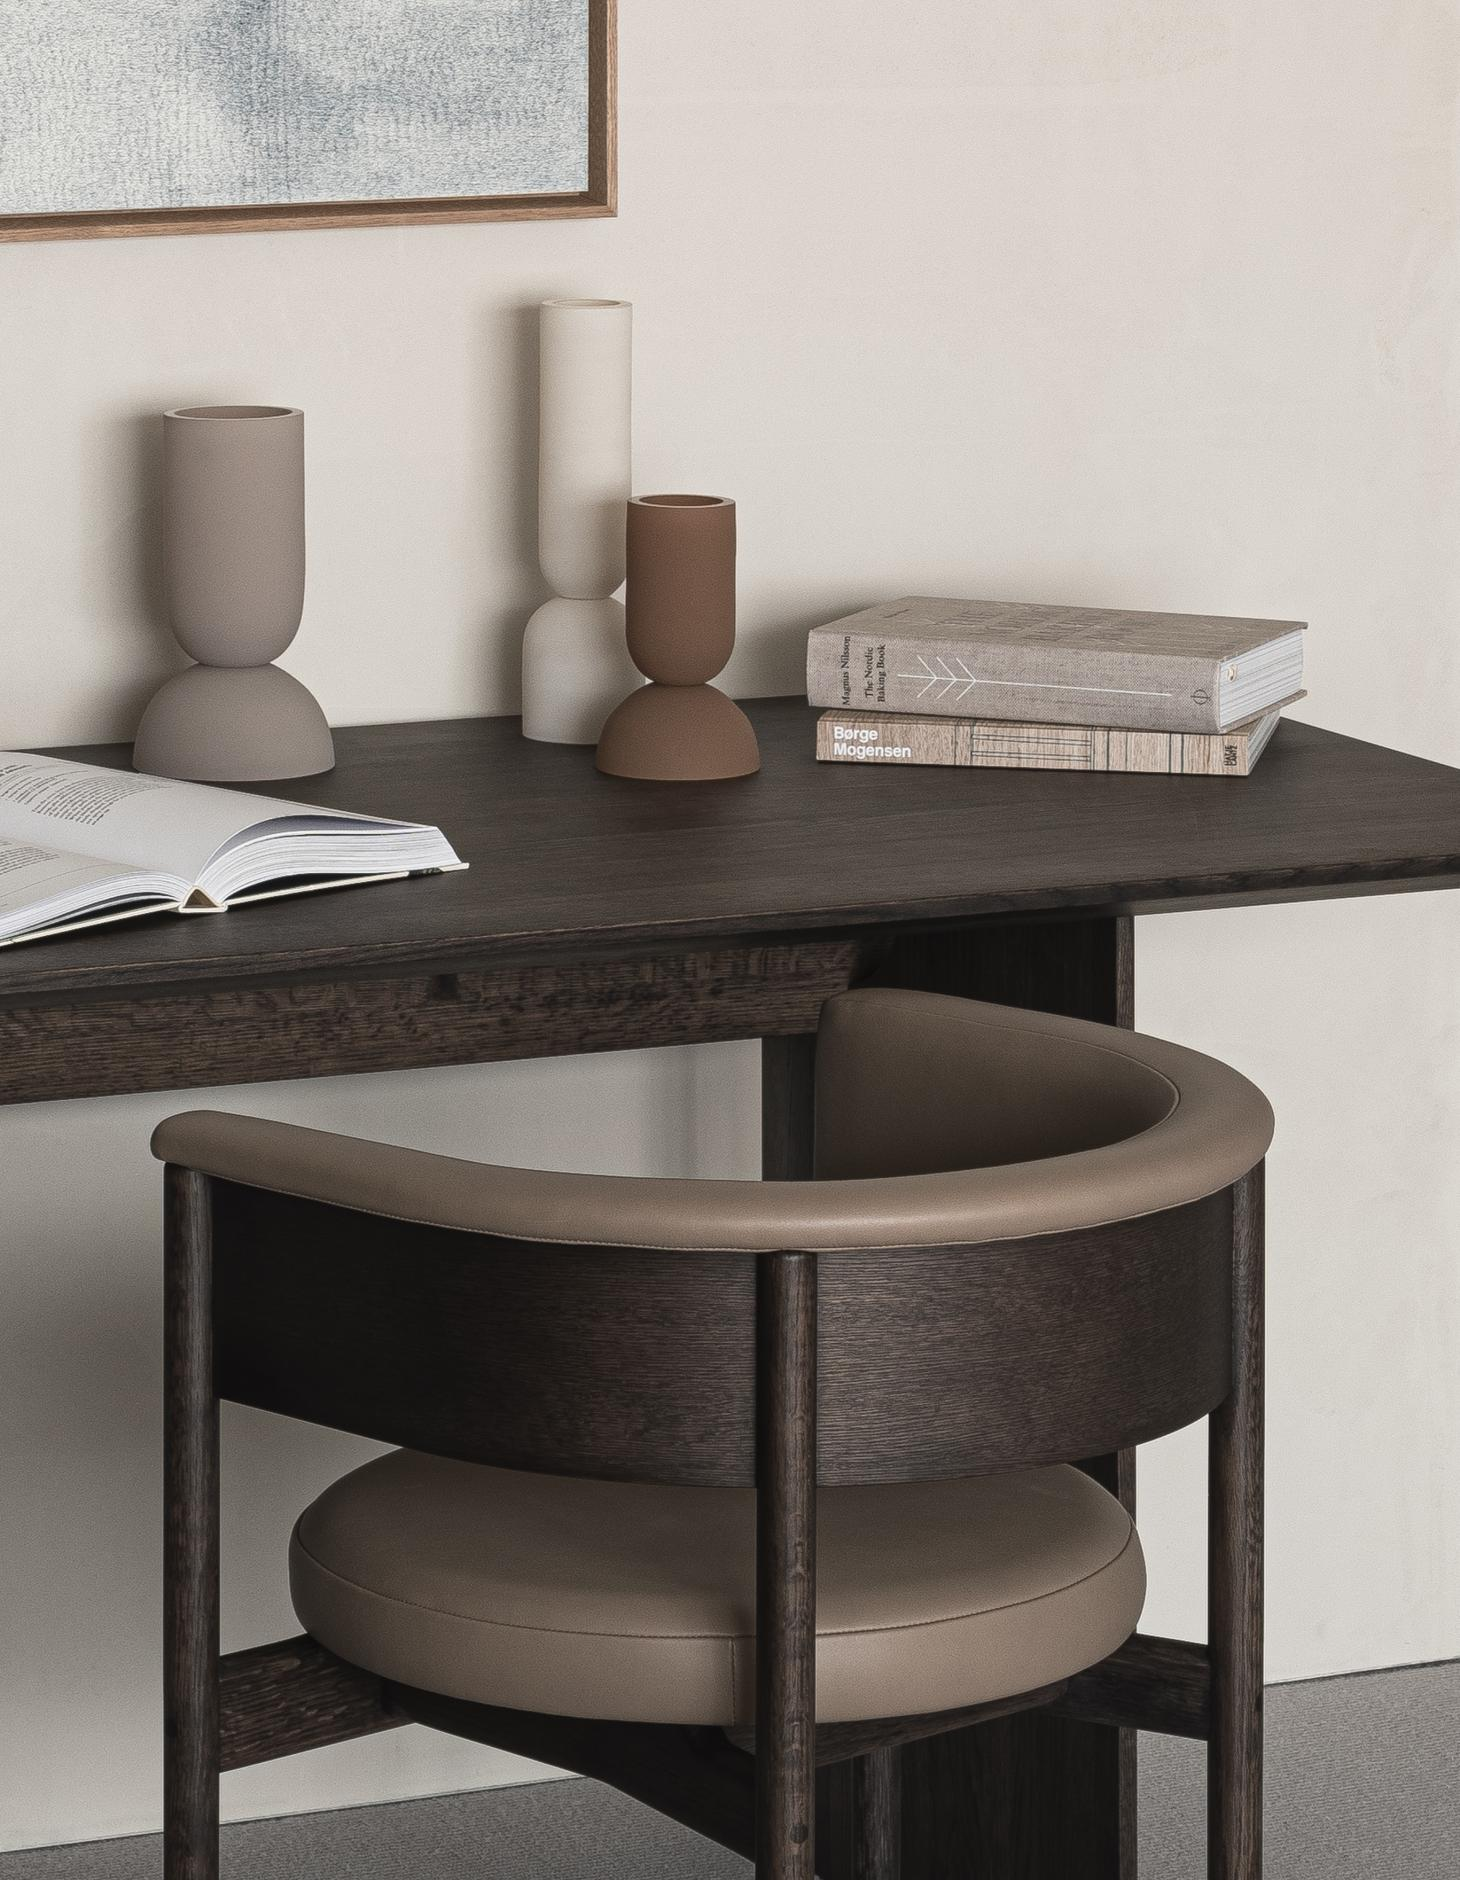 A home office corner in the Karimoku Case Study house features a circular chair and dark wooden desk